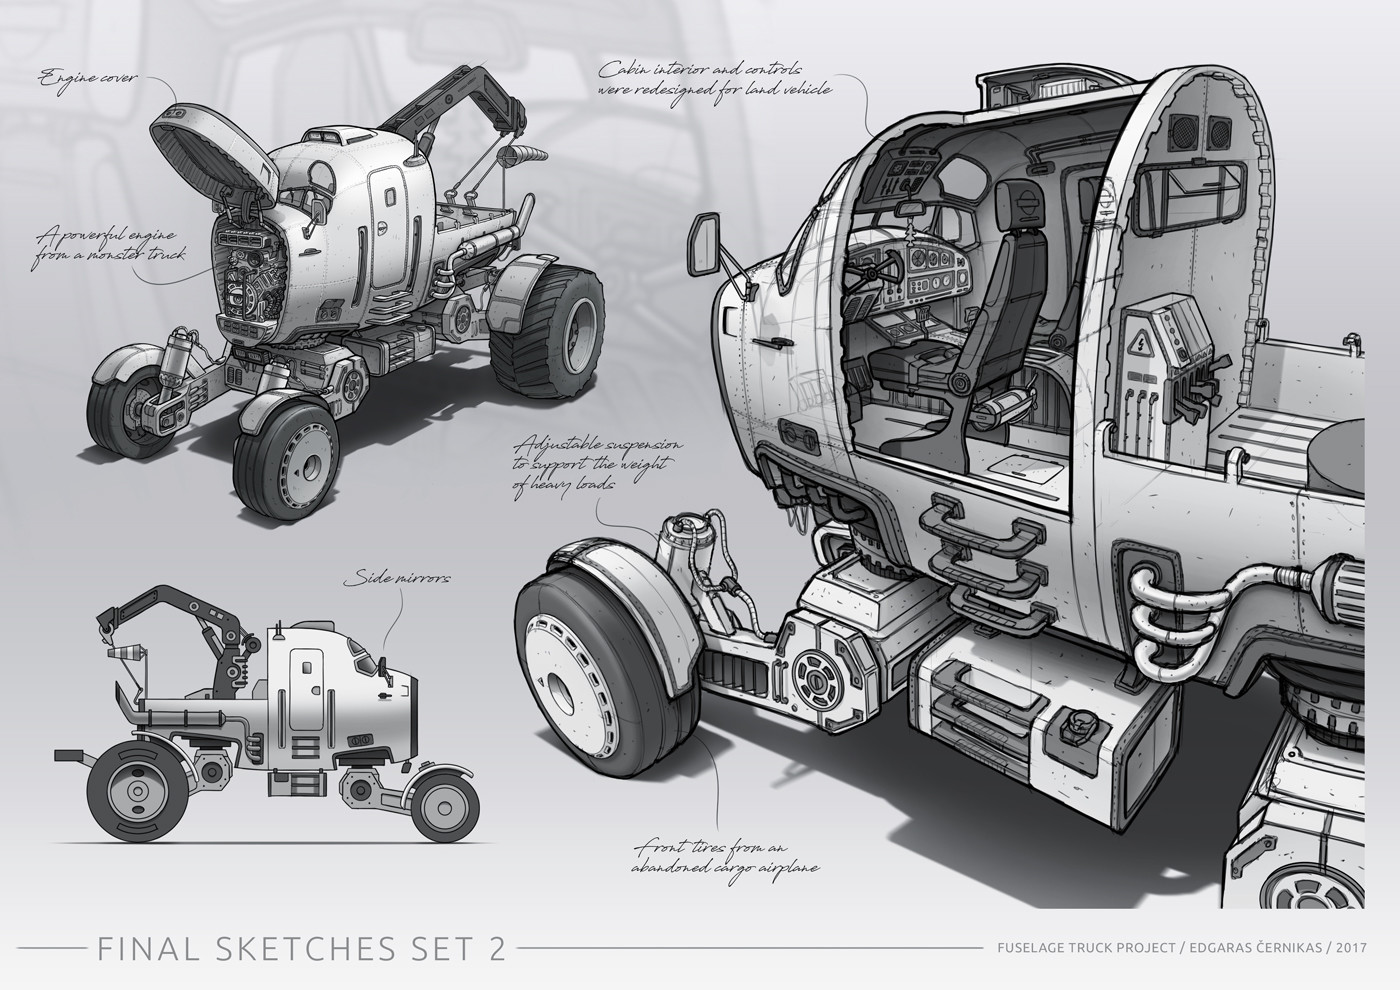 Edgaras cernikas fuselage truck final sketches set 2 1400x990